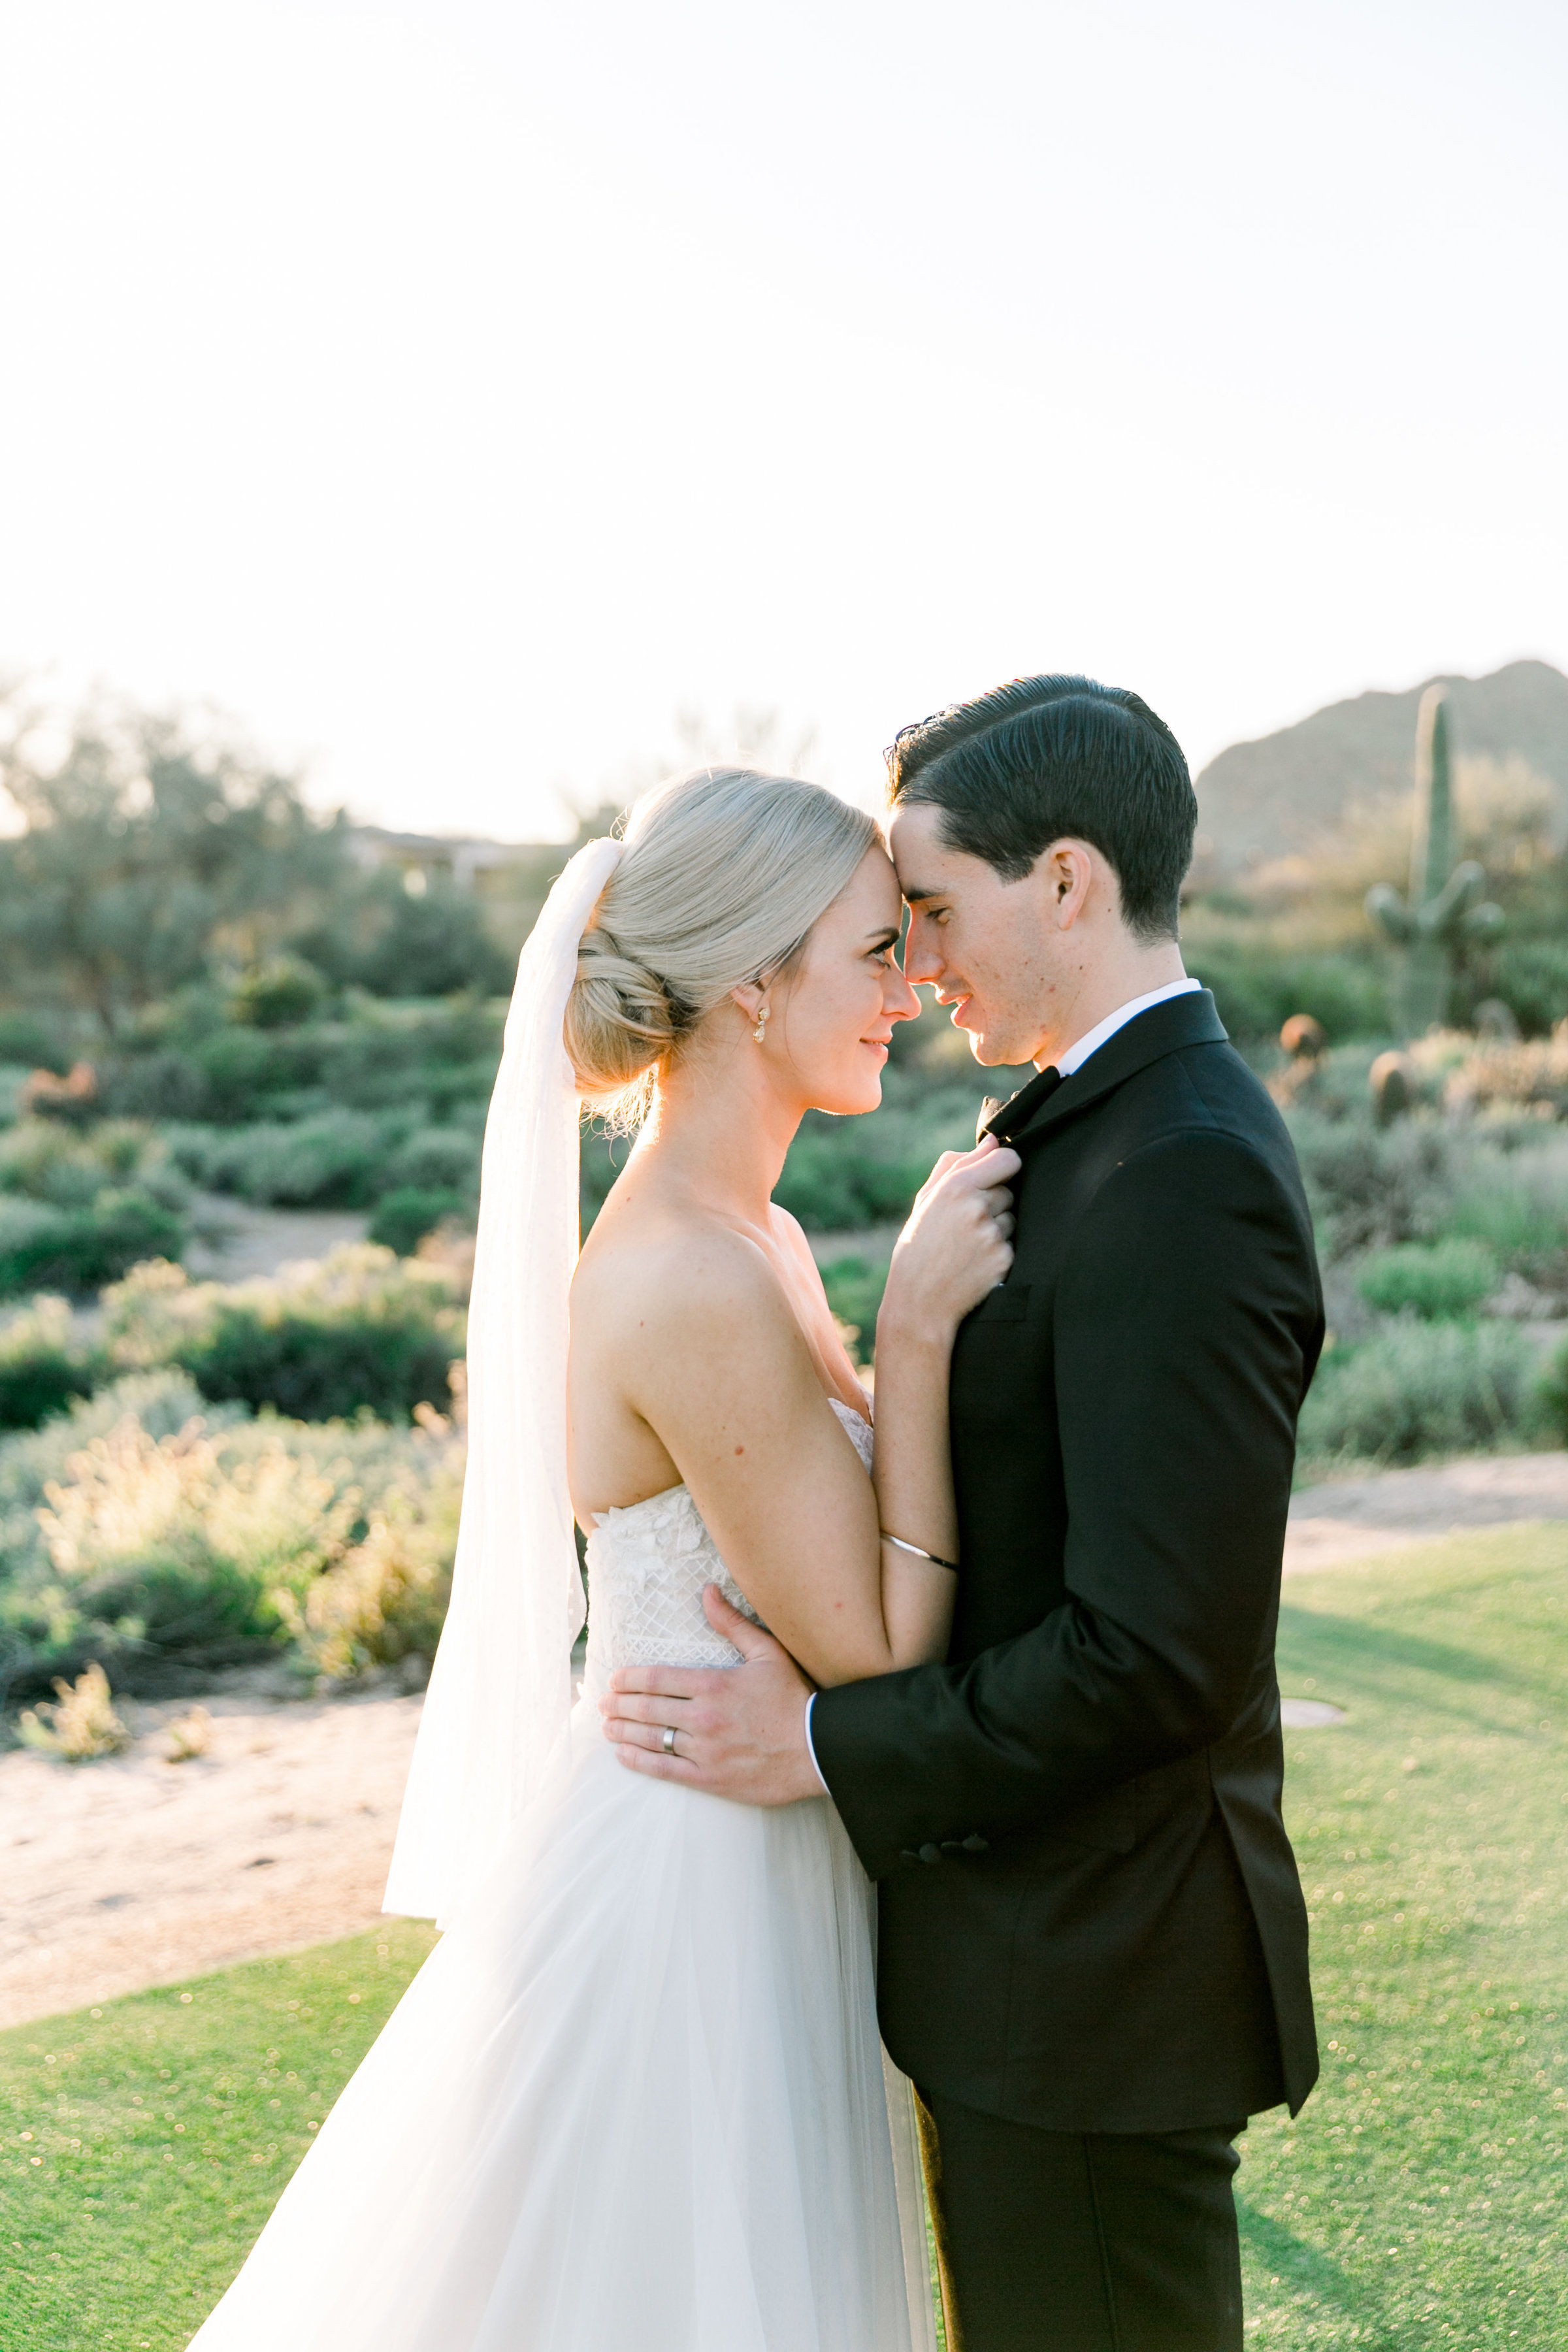 Karlie Colleen Photography - Arizona Wedding at The Troon Scottsdale Country Club - Paige & Shane -650